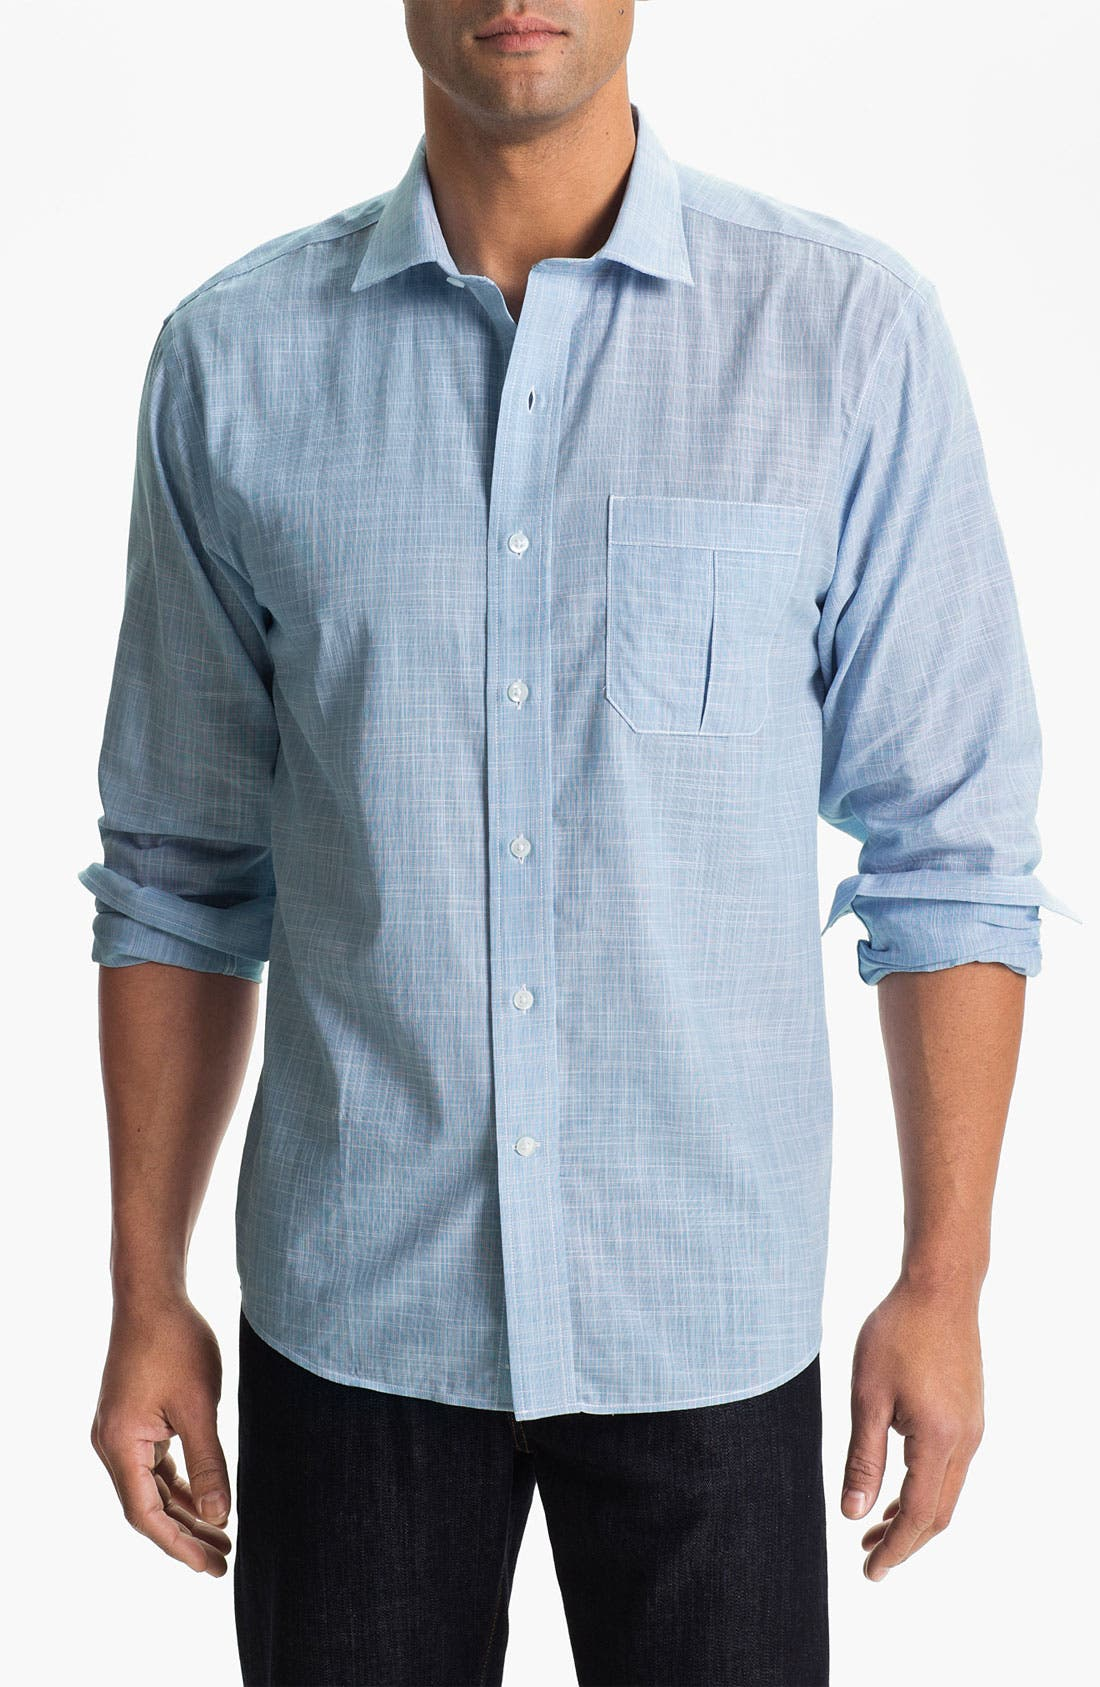 Alternate Image 1 Selected - Cutter & Buck 'Blue Ridge Solid' Regular Fit Sport Shirt (Online Only)